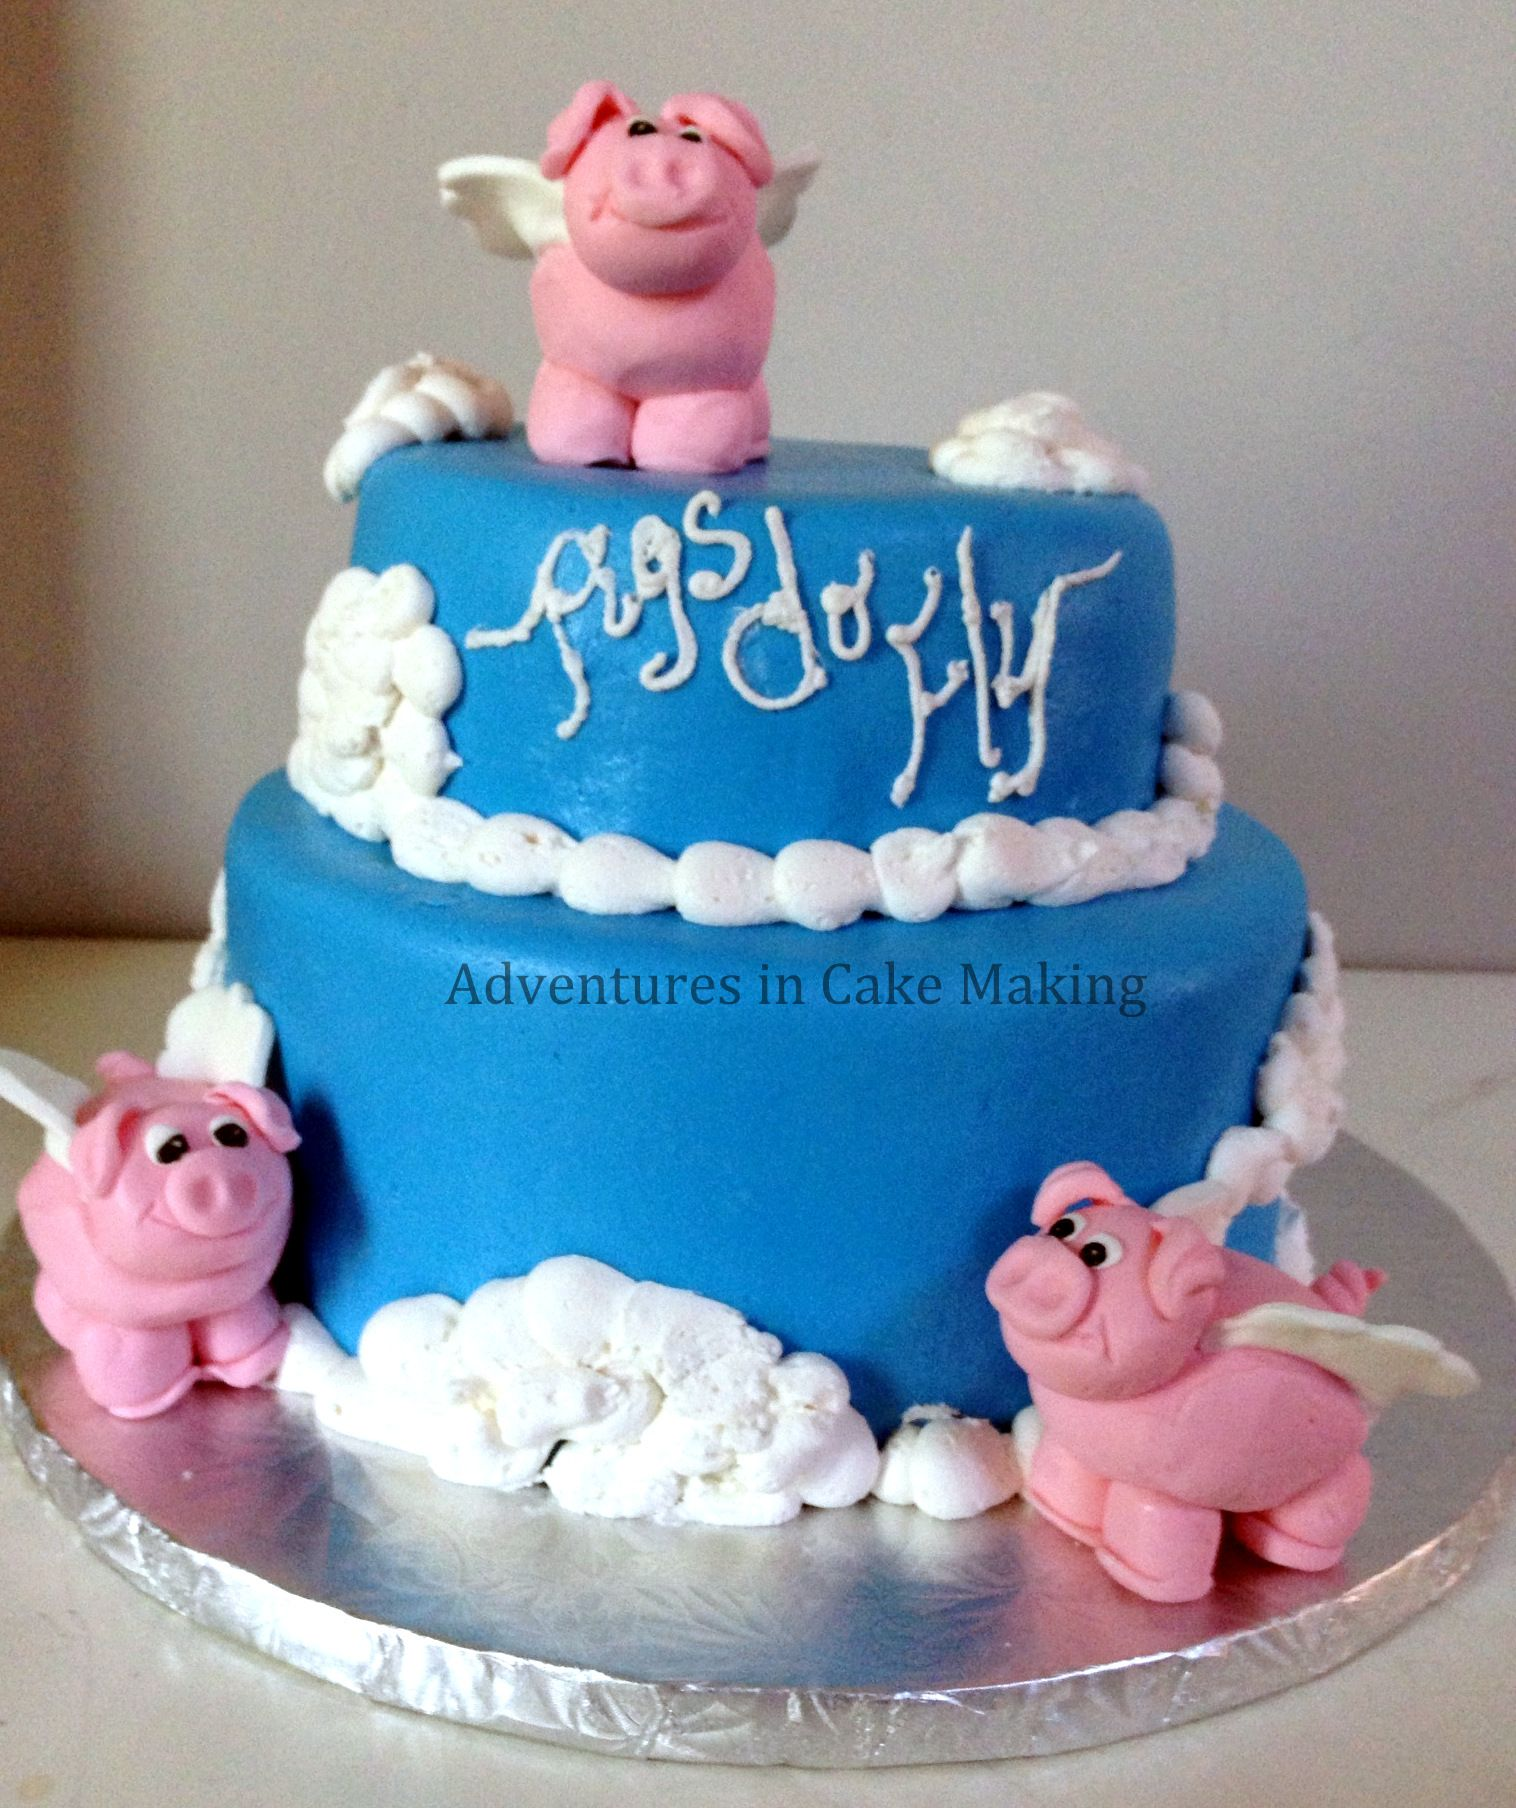 When Pigs Fly baby shower cake, the pis are my first modeling chocolate project